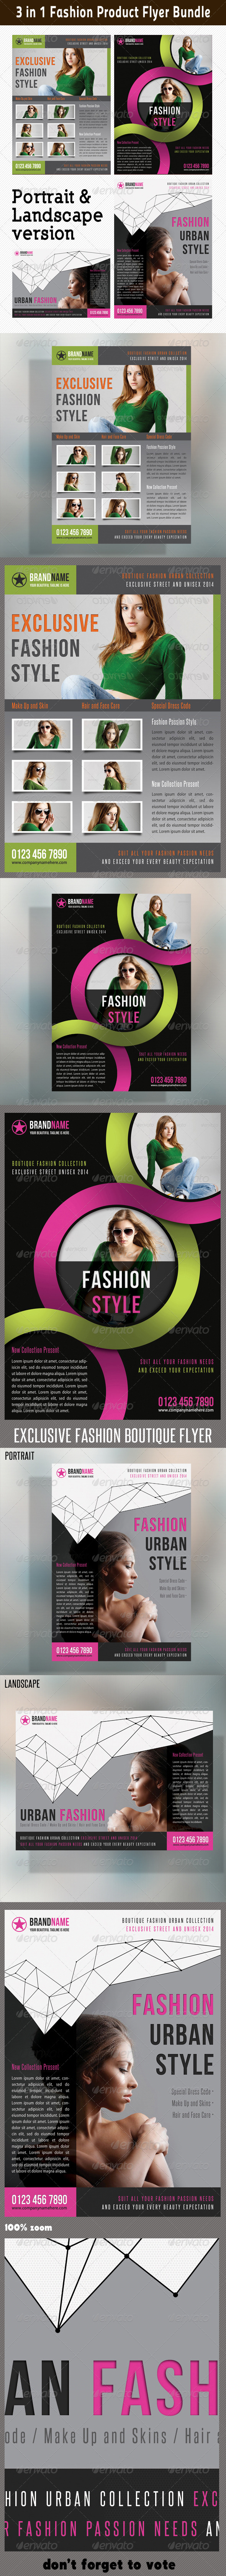 3 in 1 Fashion Product Flyer Bundle 09 - Commerce Flyers